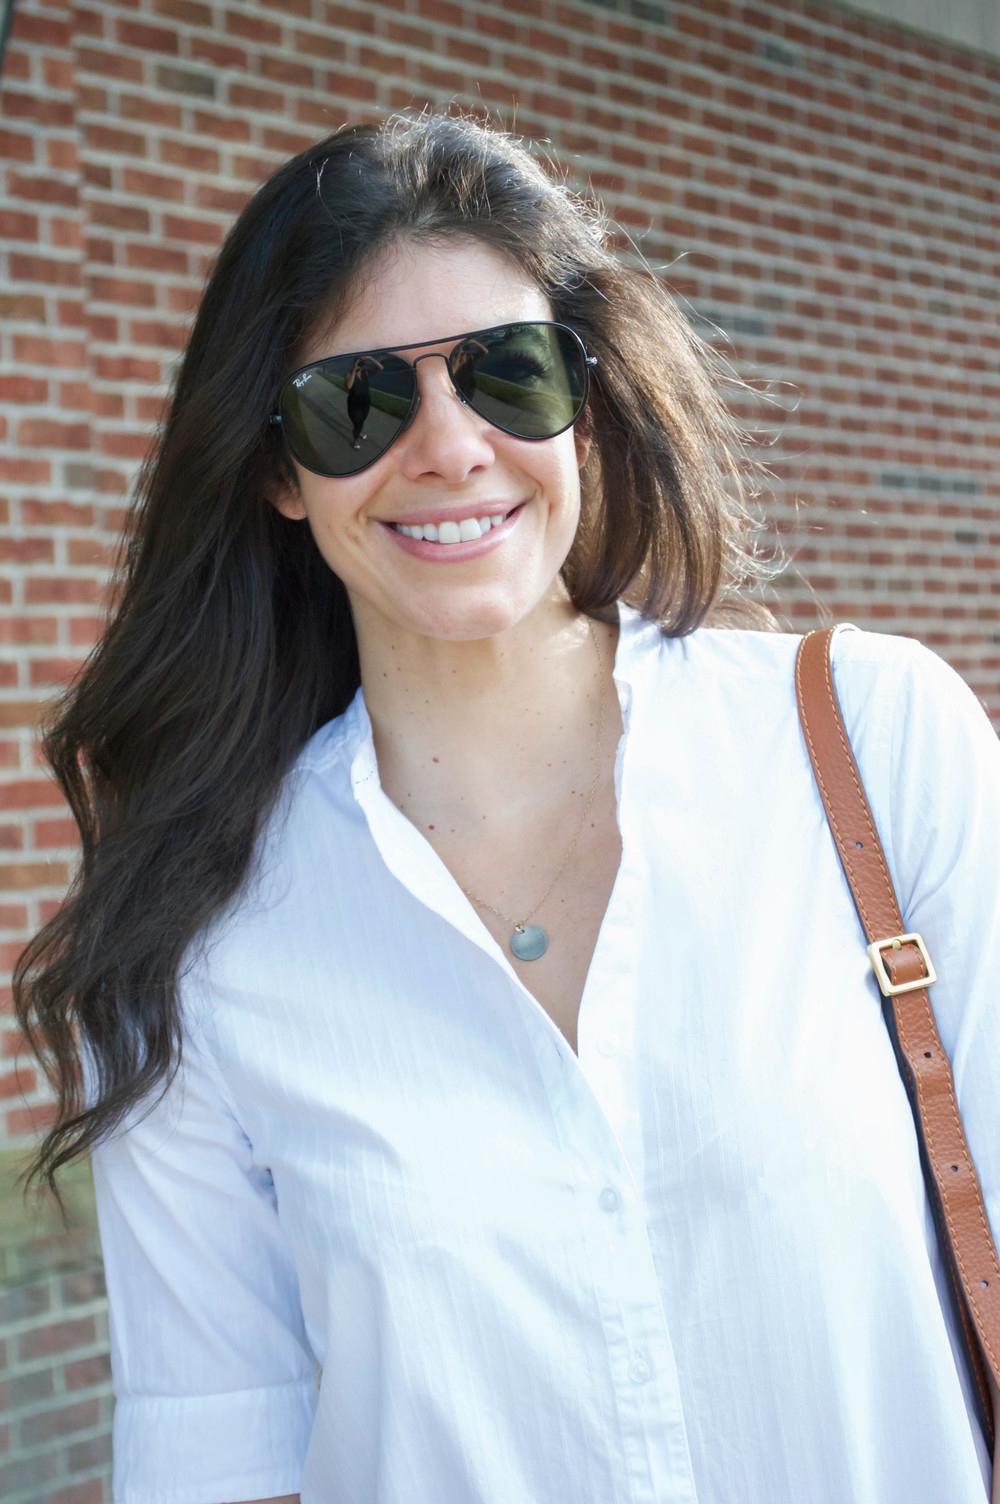 LaurenSchwaiger-LIfestyle-Blog-Summer-White-Button-Down.jpg